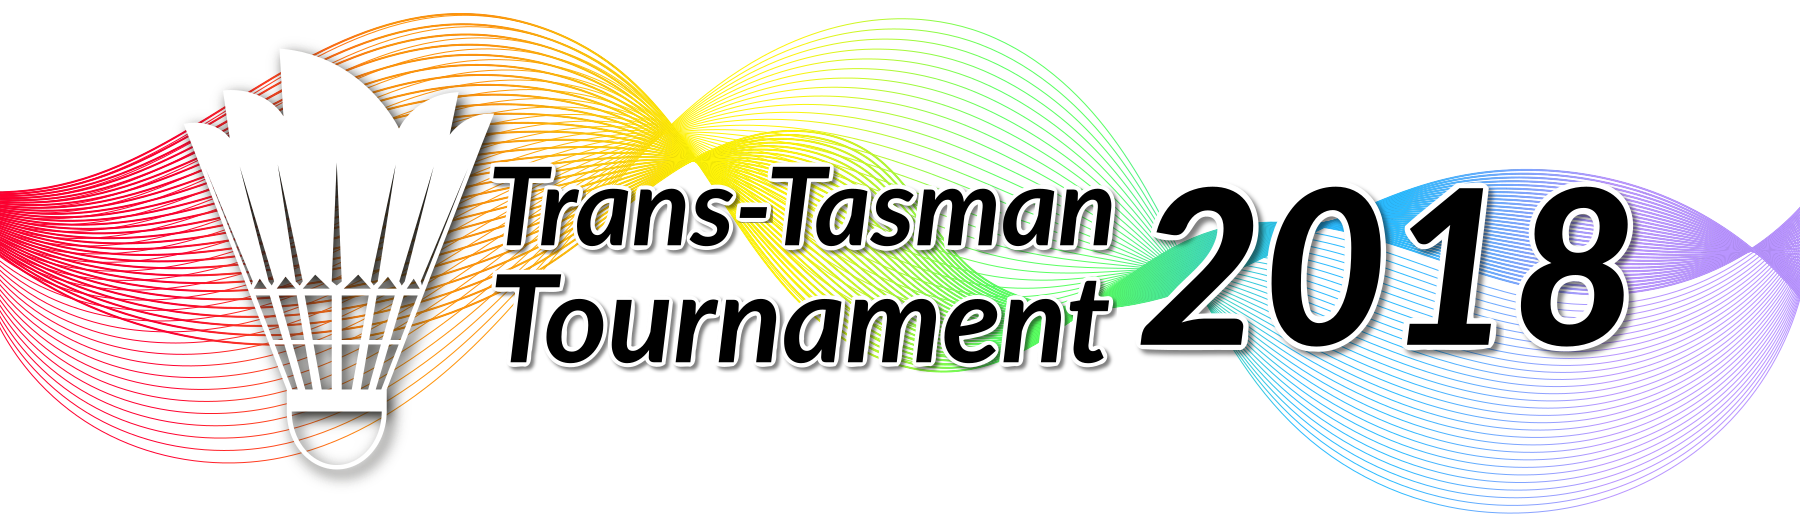 Trans-Tasman Tournament 2018